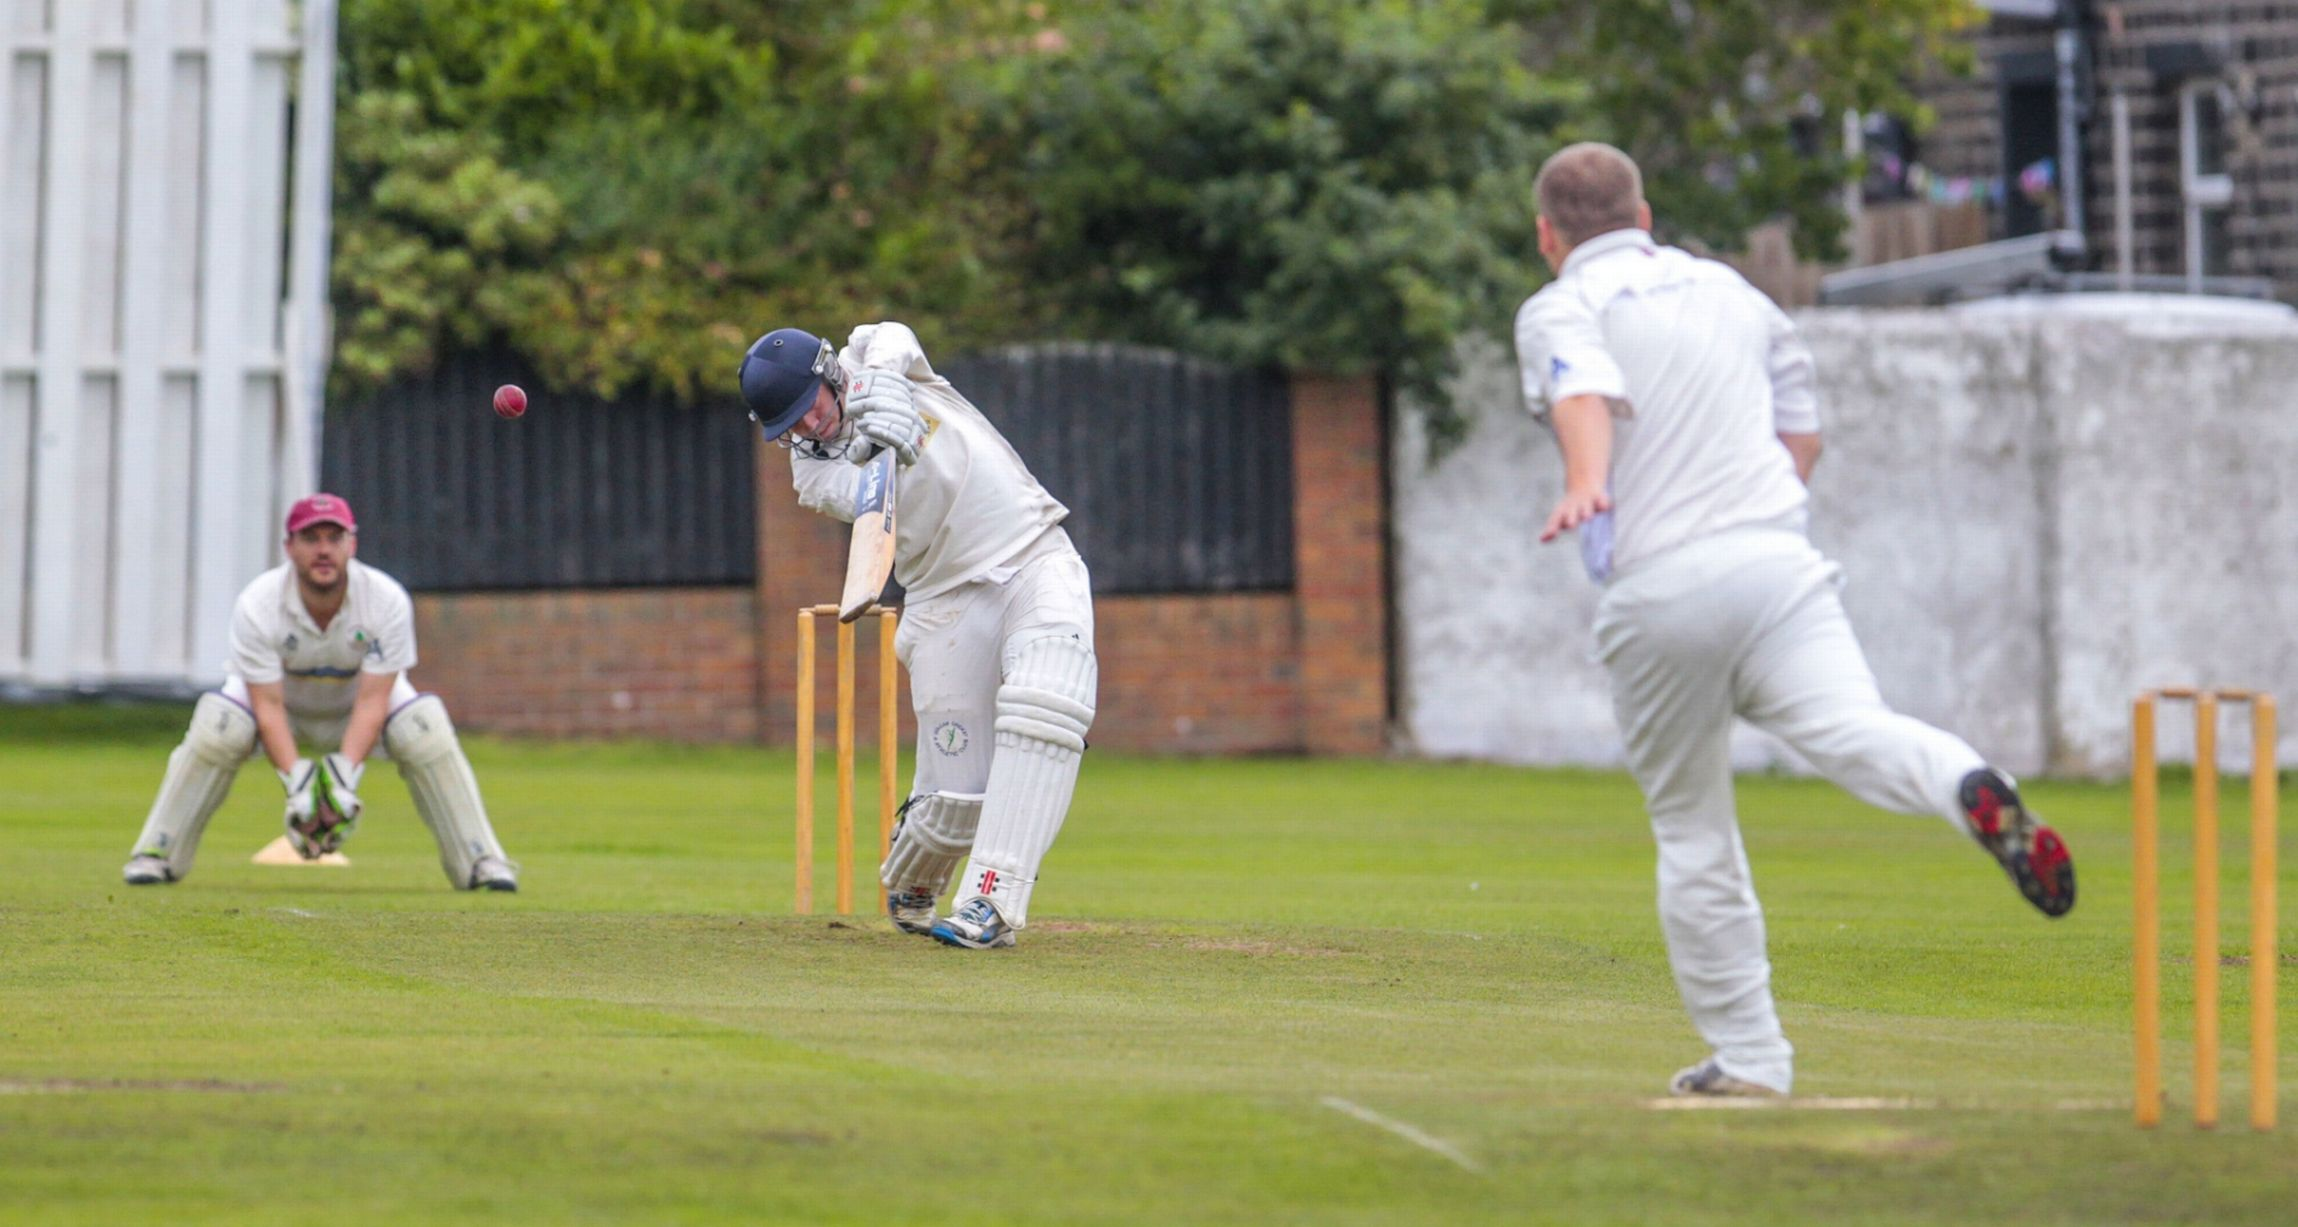 Caufield's Maiden Ton Helps Oak To Opening Day Win - Championship Two Roundup